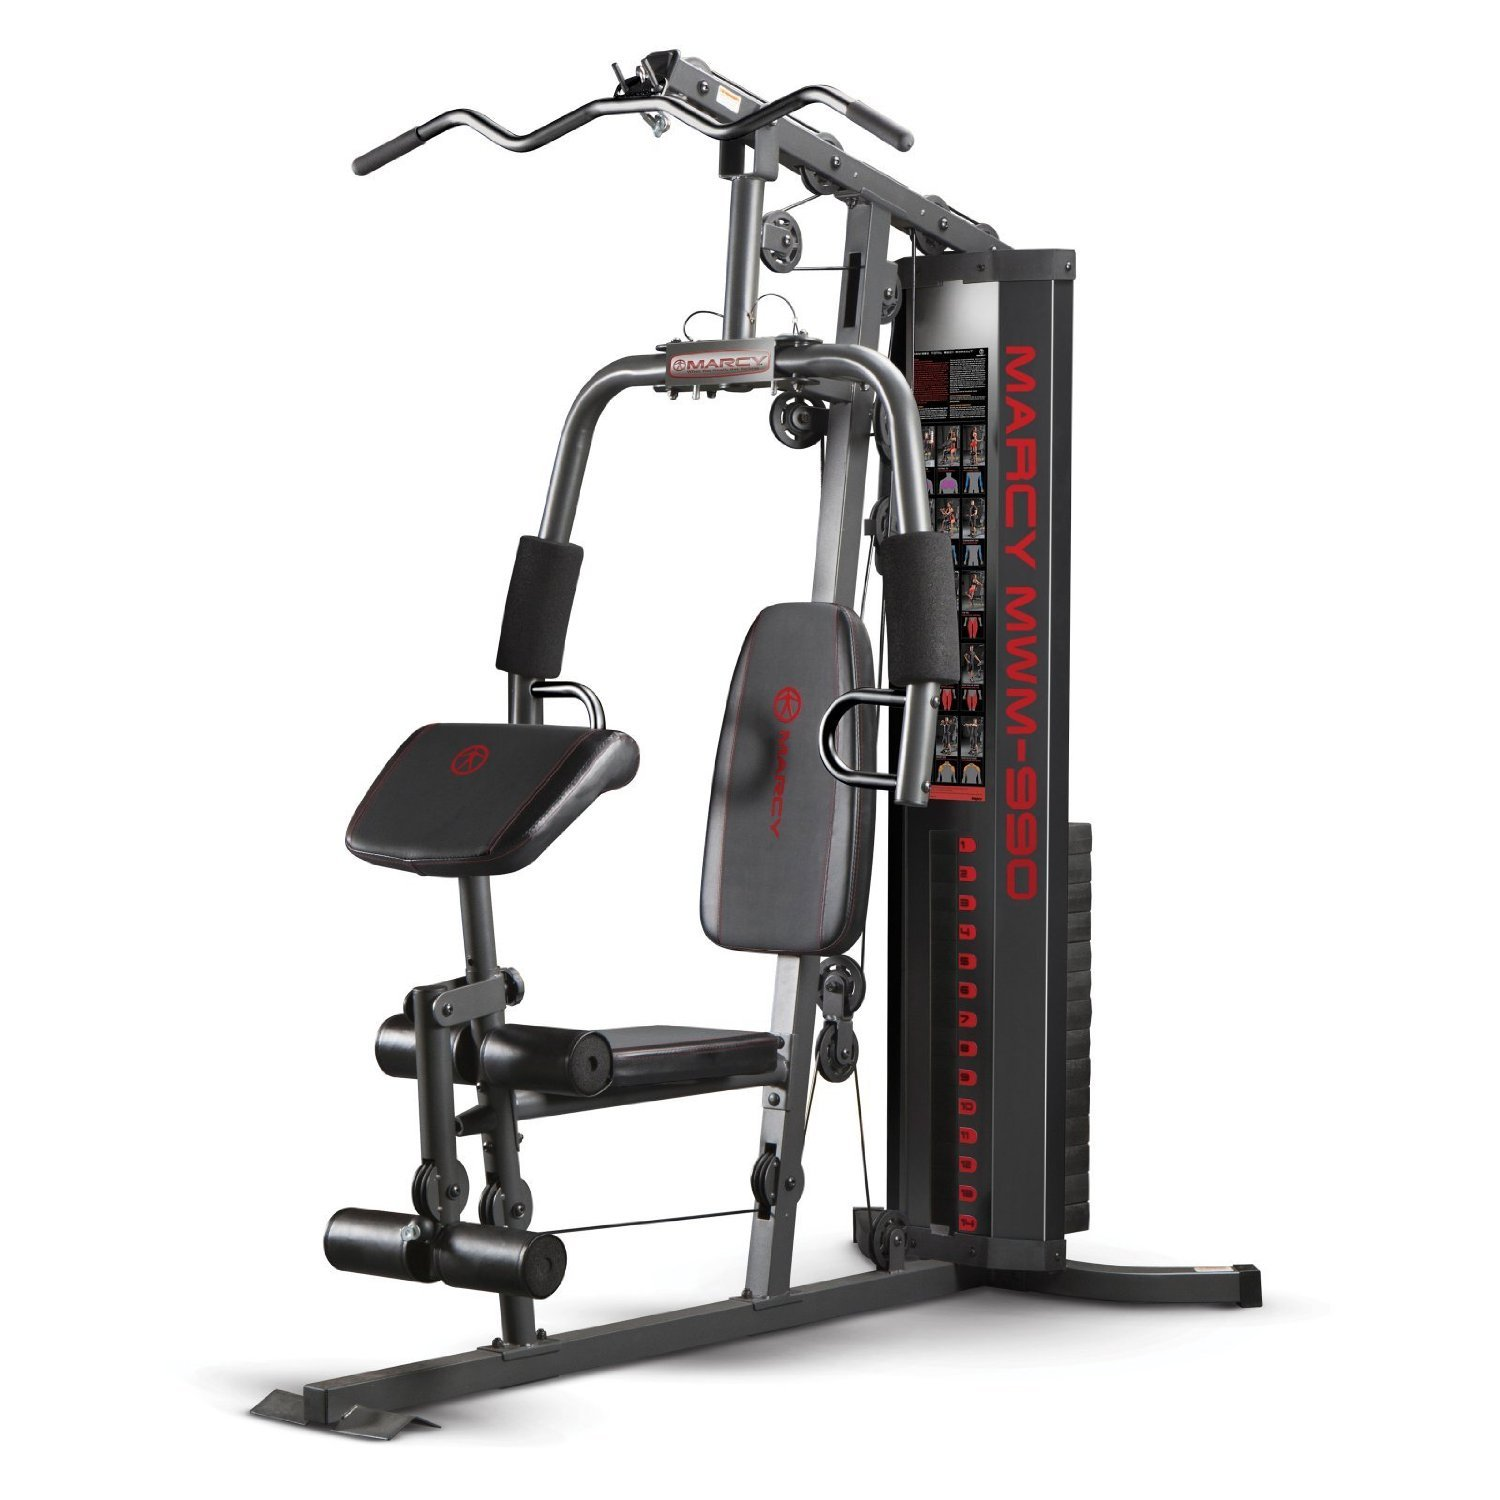 Top Exercise Equipment: 10 Best Home Gym Equipment Workout Machines Review (2019